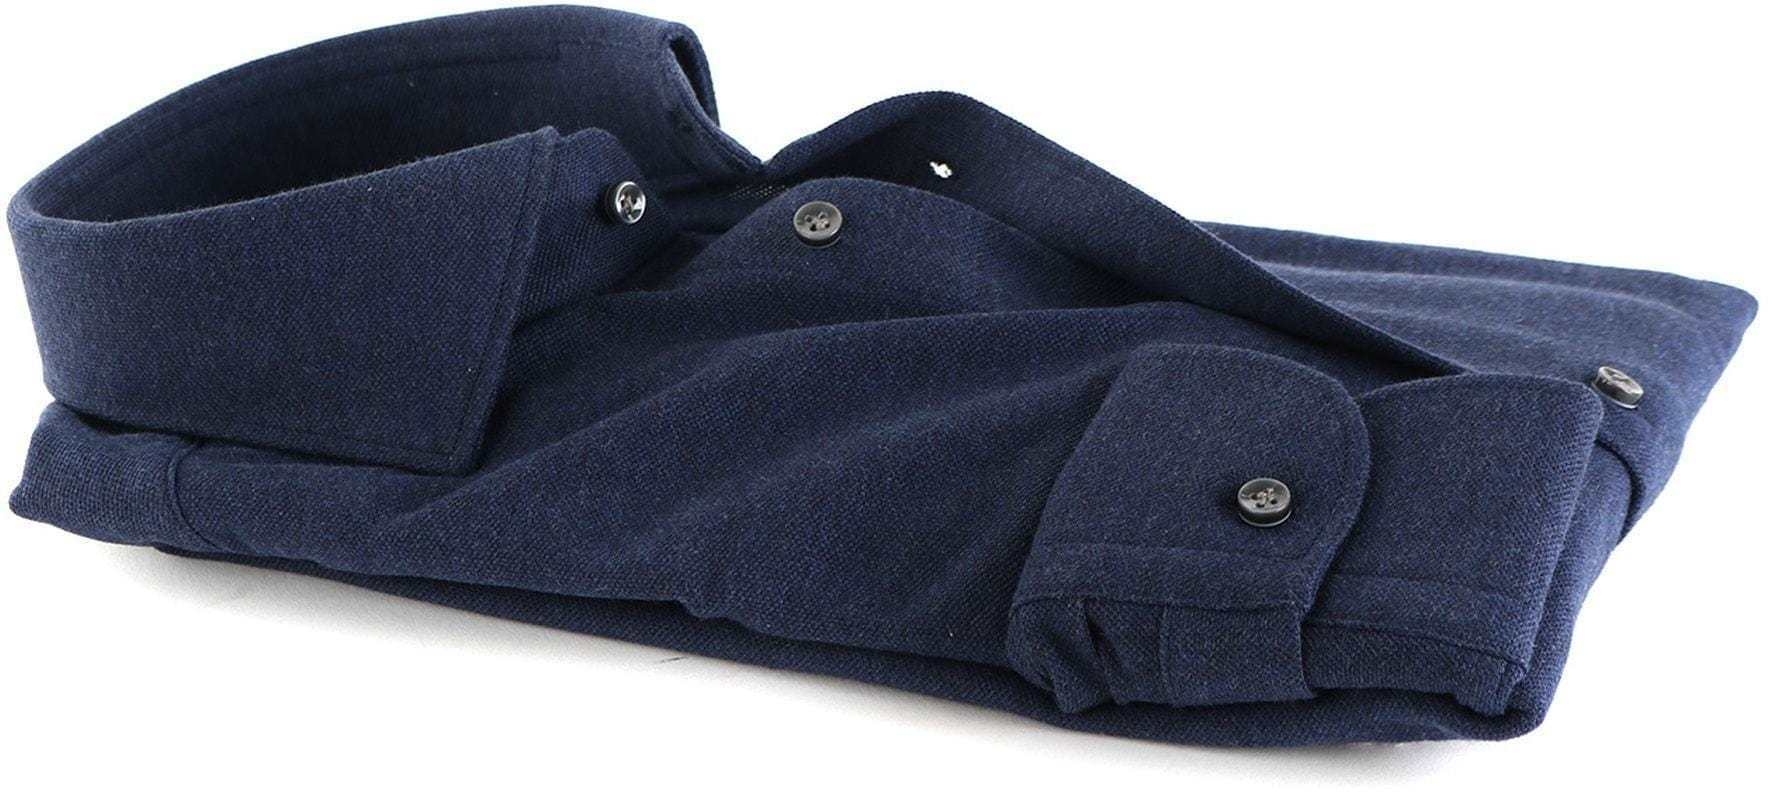 Profuomo Overhemd Knitted Donkerblauw foto 2